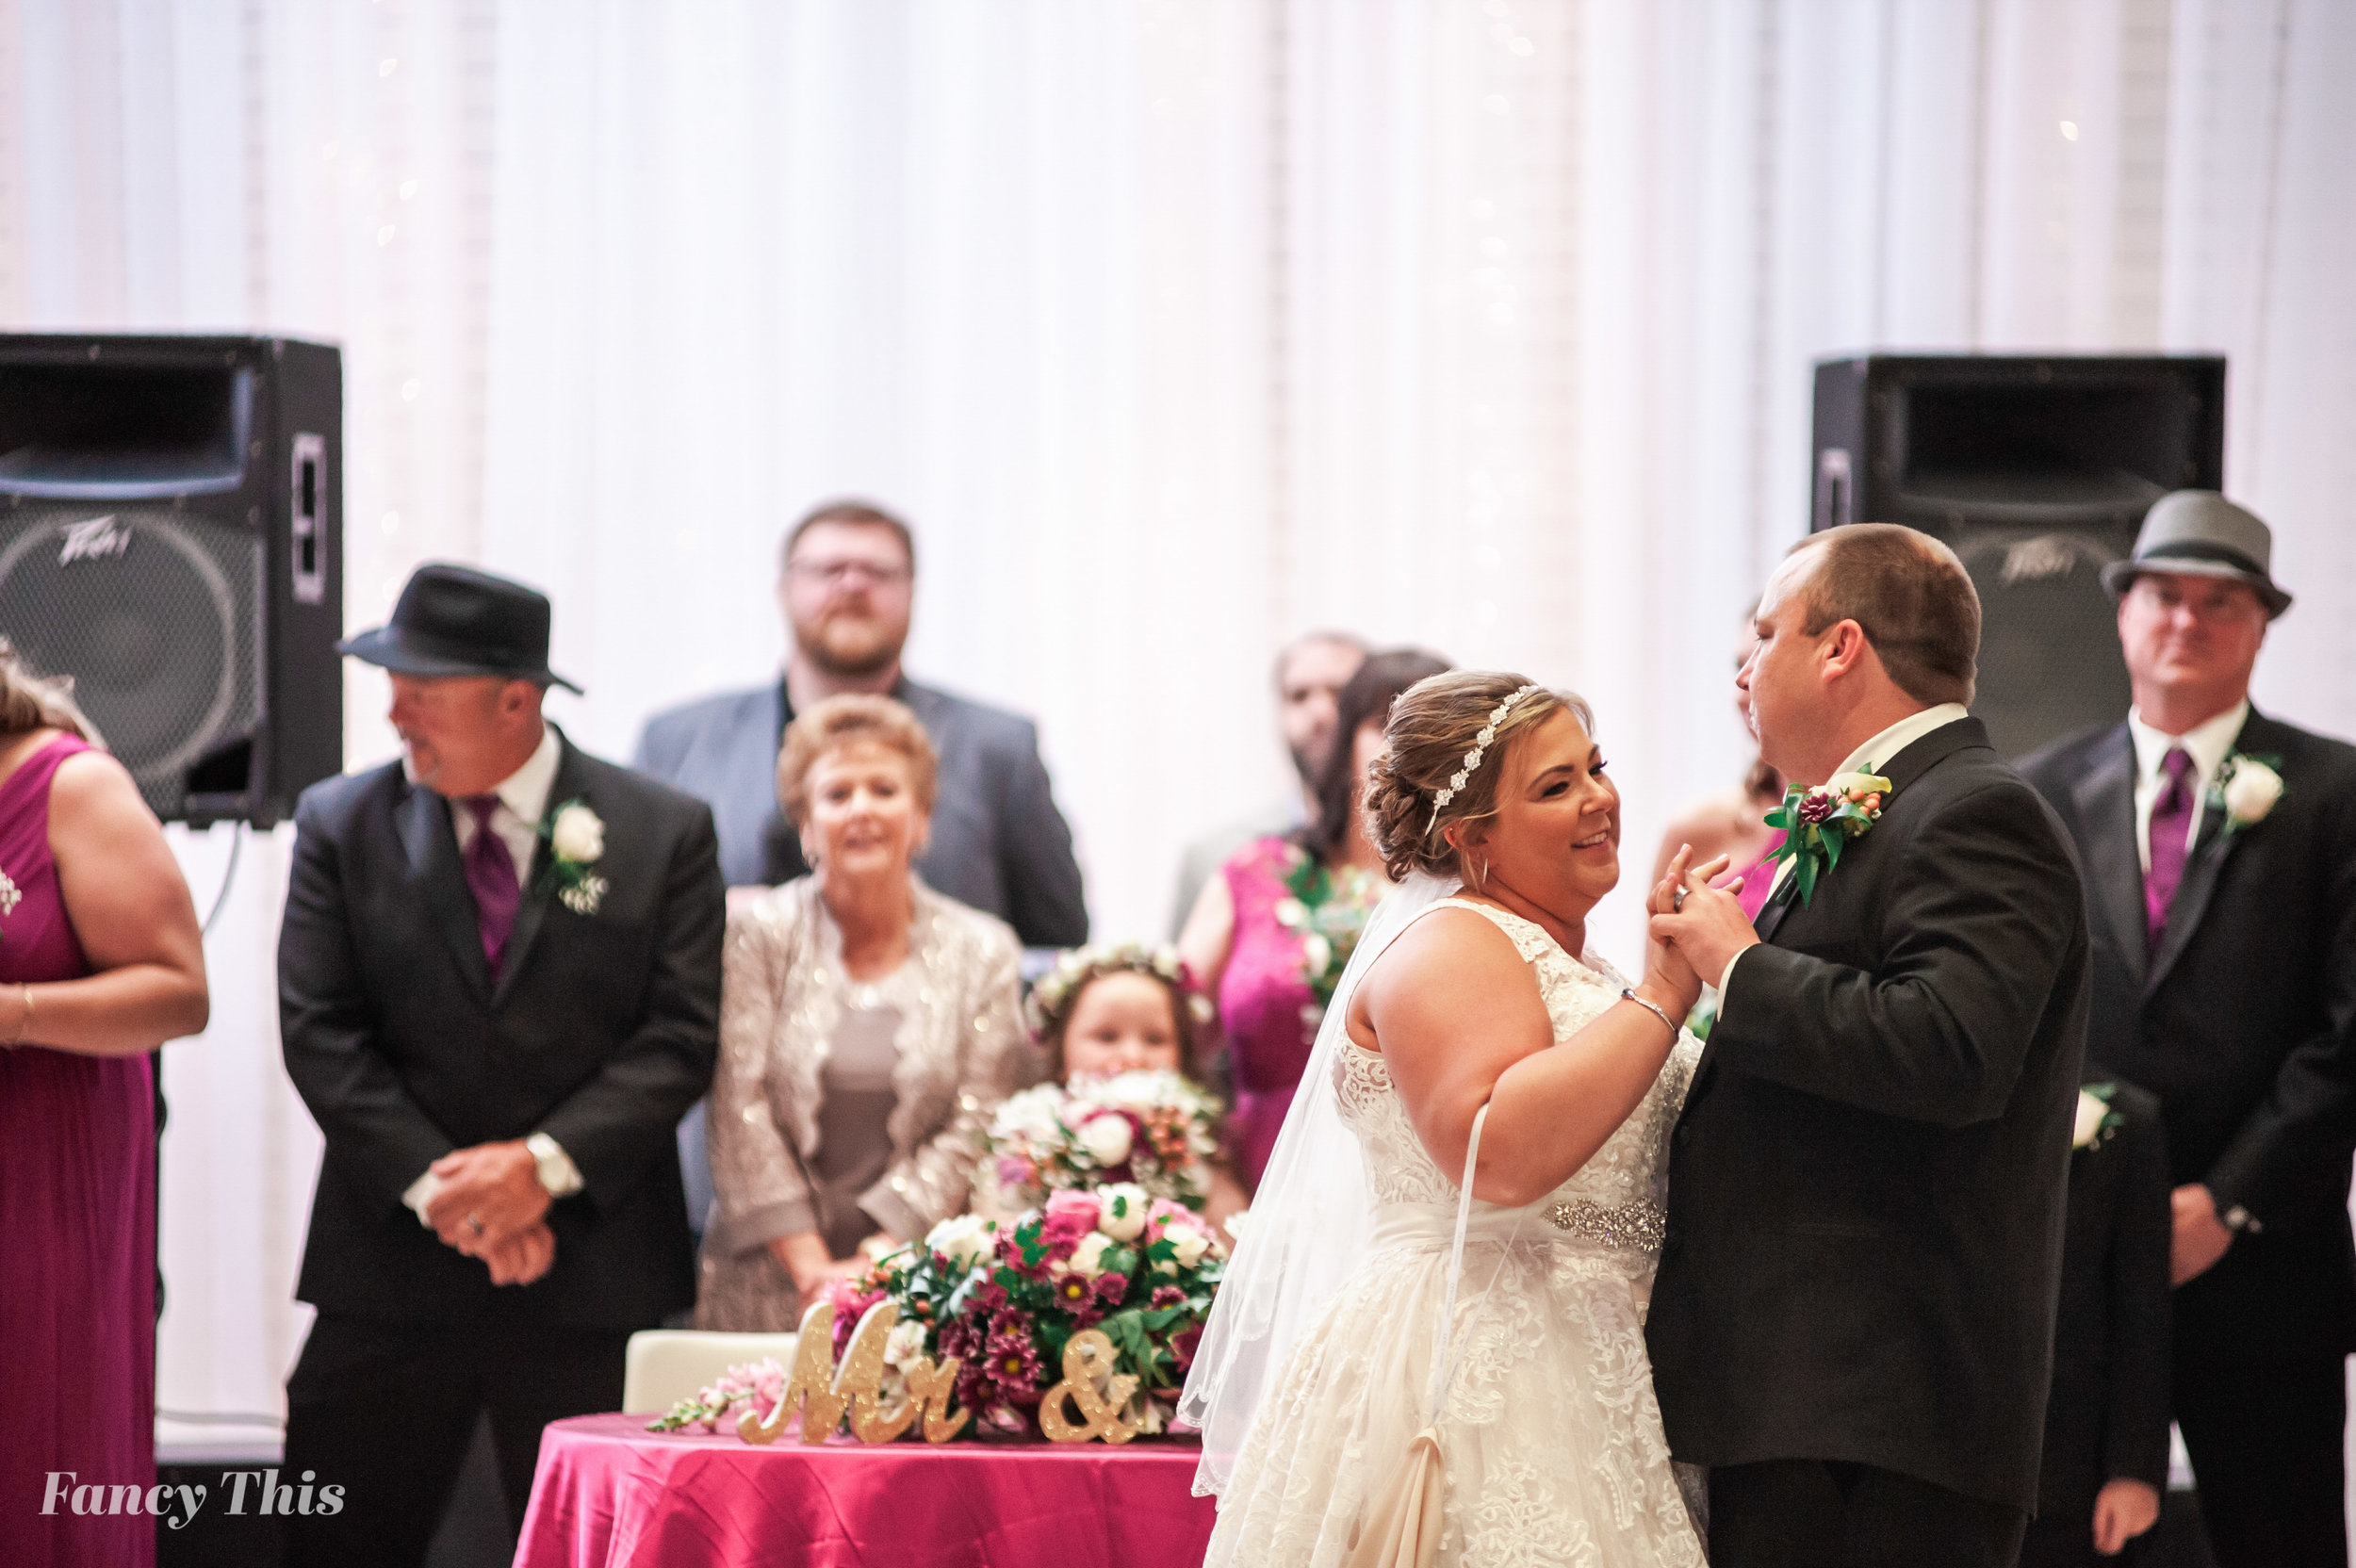 easternncweddingphotographer_williamstonwedding_bobmartinagriculturewedding-487.jpg